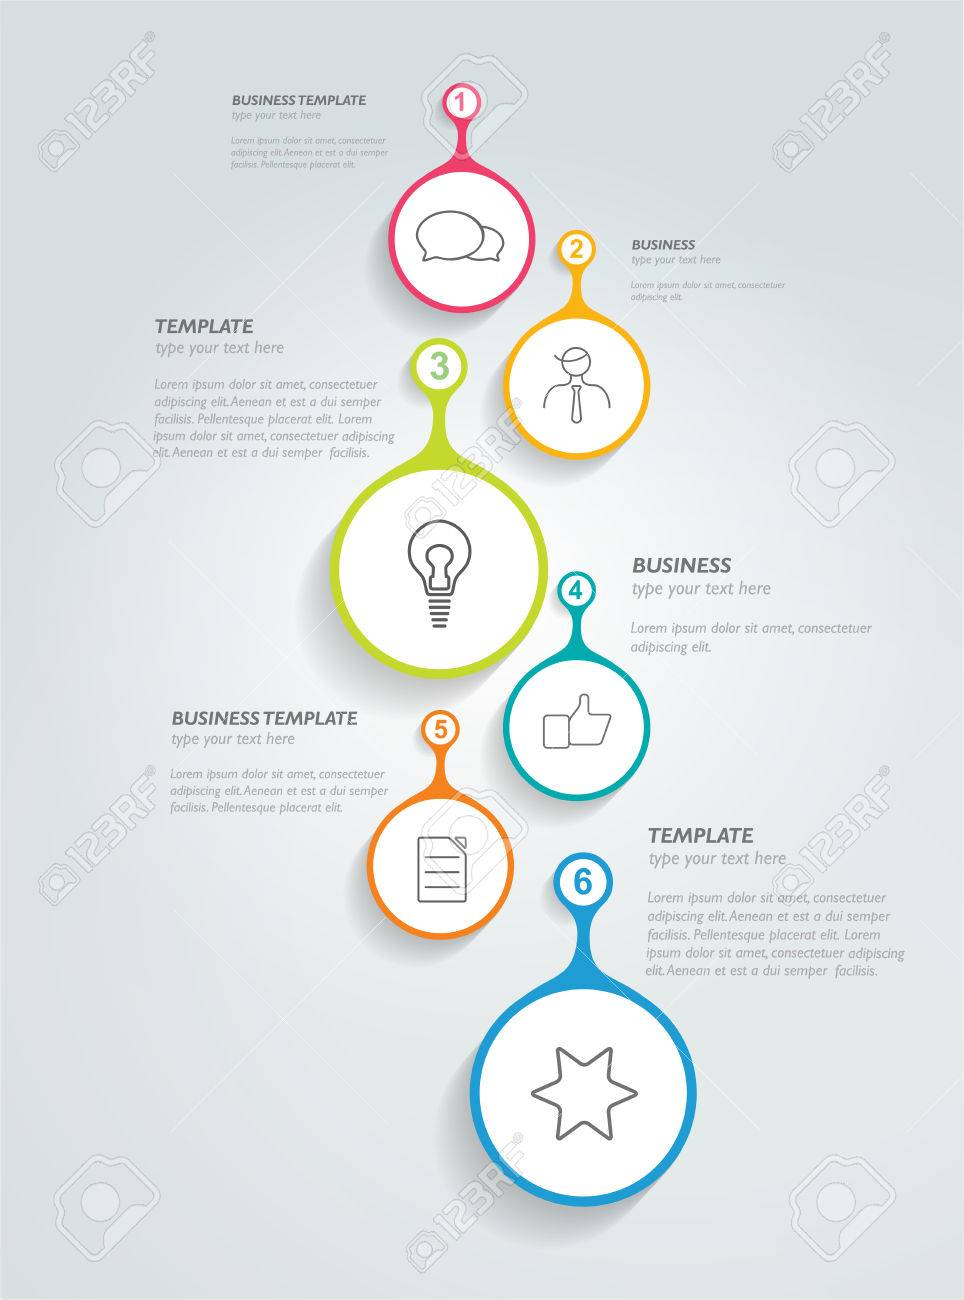 Timeline Infographic Template Vector Circle Banner Royalty Free - Free timeline infographic template